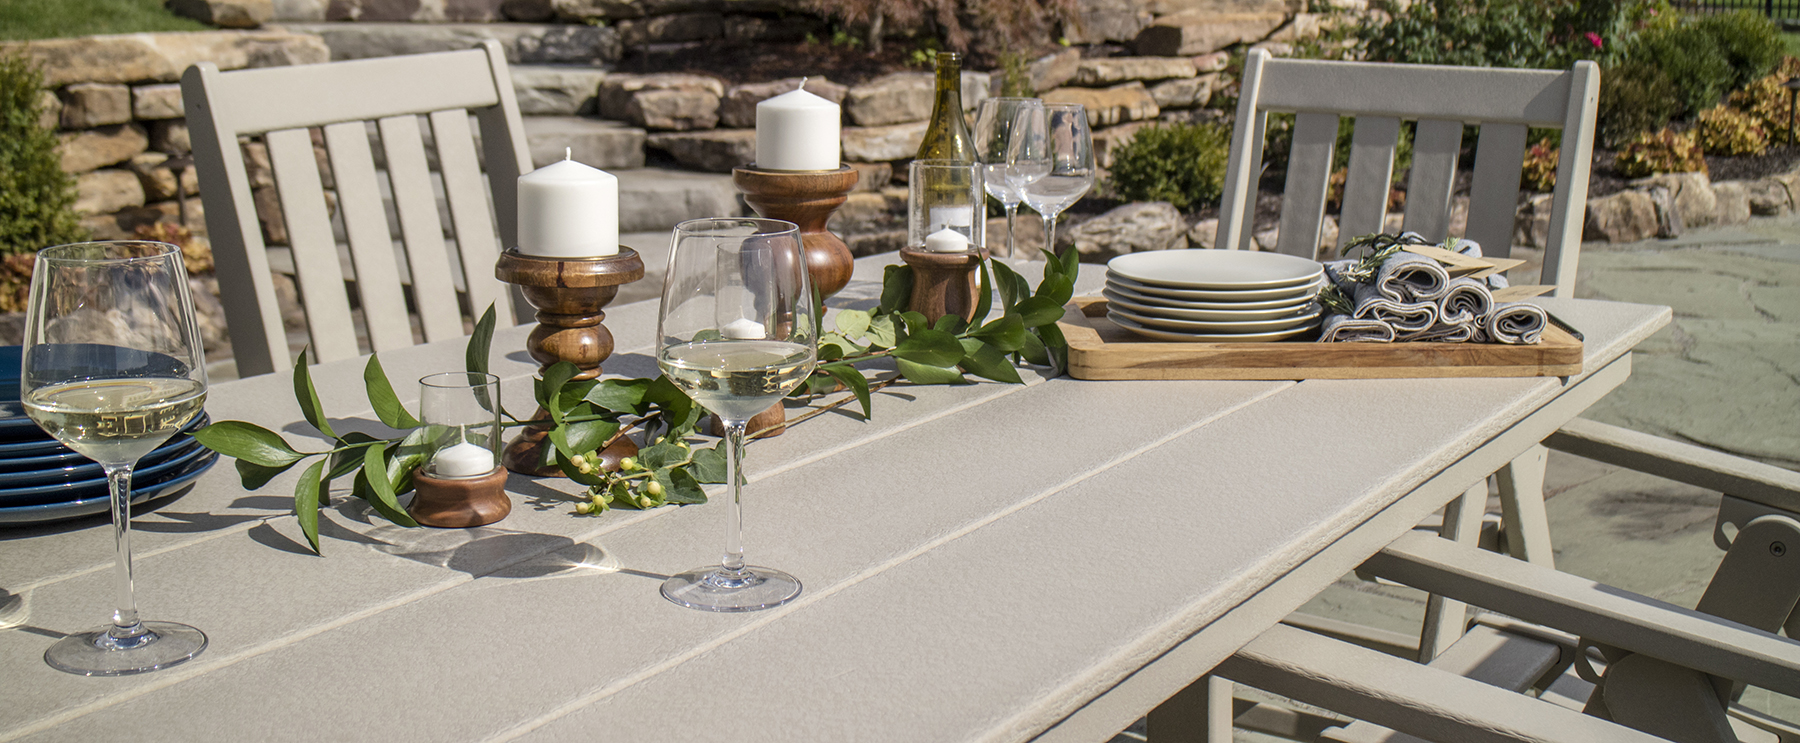 defining your outdoor farmhouse style